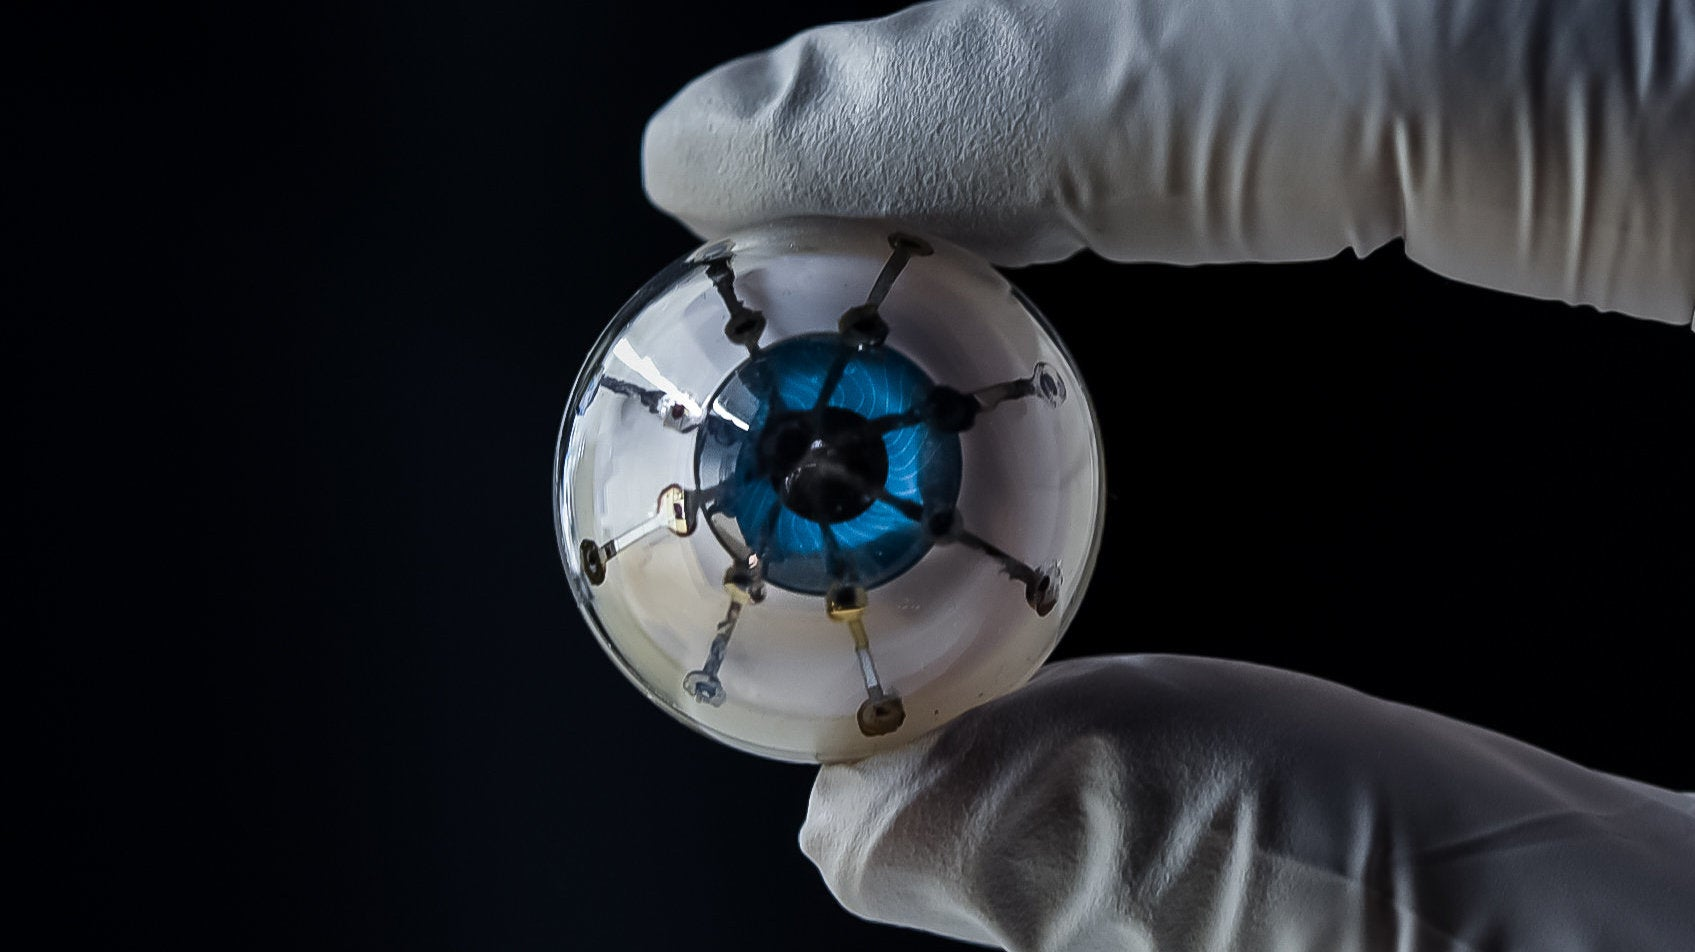 New Research Takes Us One Step Closer To A Bionic Eye